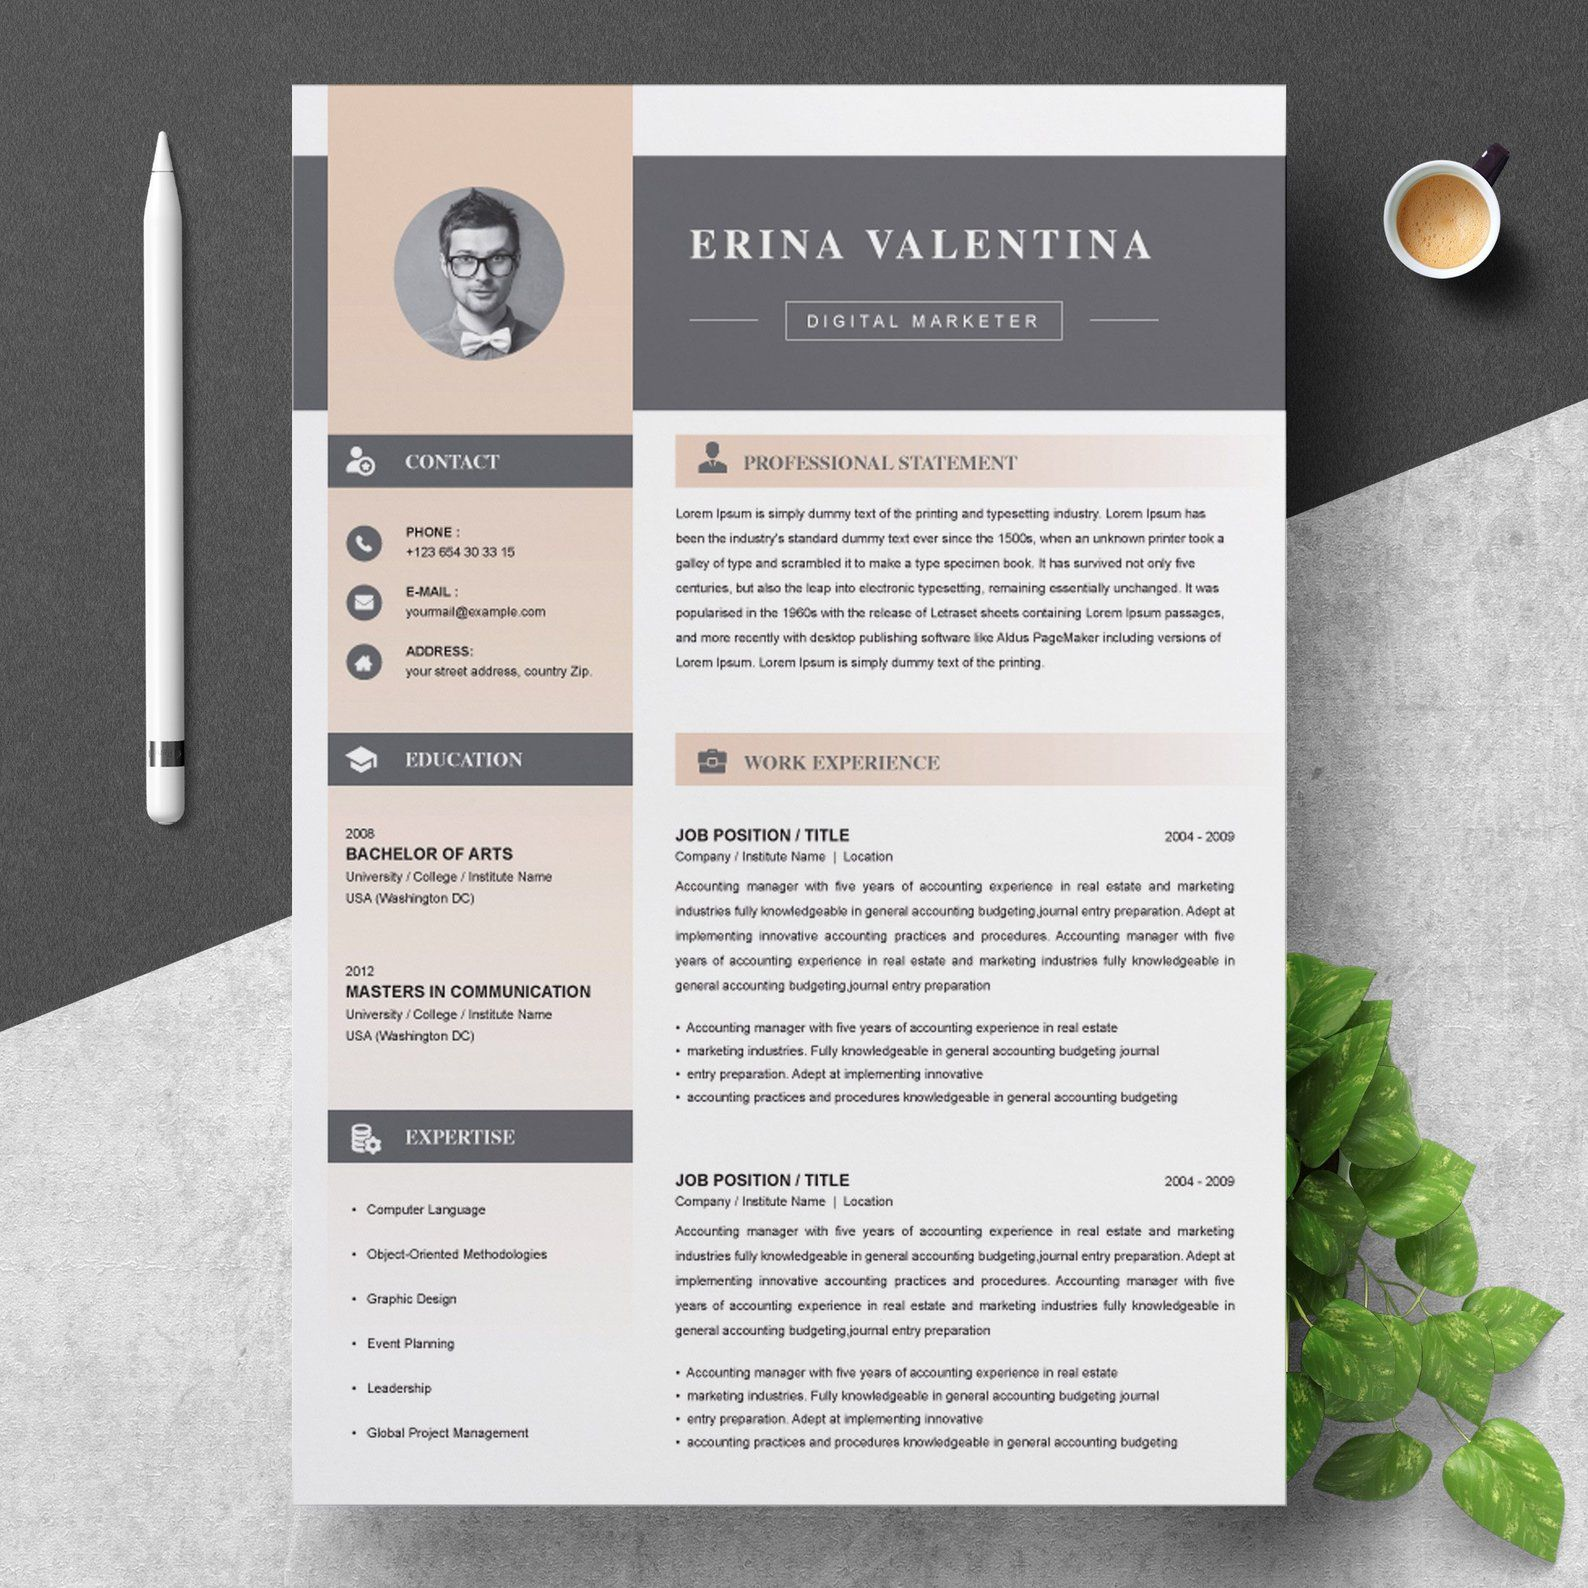 resume cv template with cover letter etsy design free awesome templates microsoft word Resume Free Awesome Resume Templates Microsoft Word